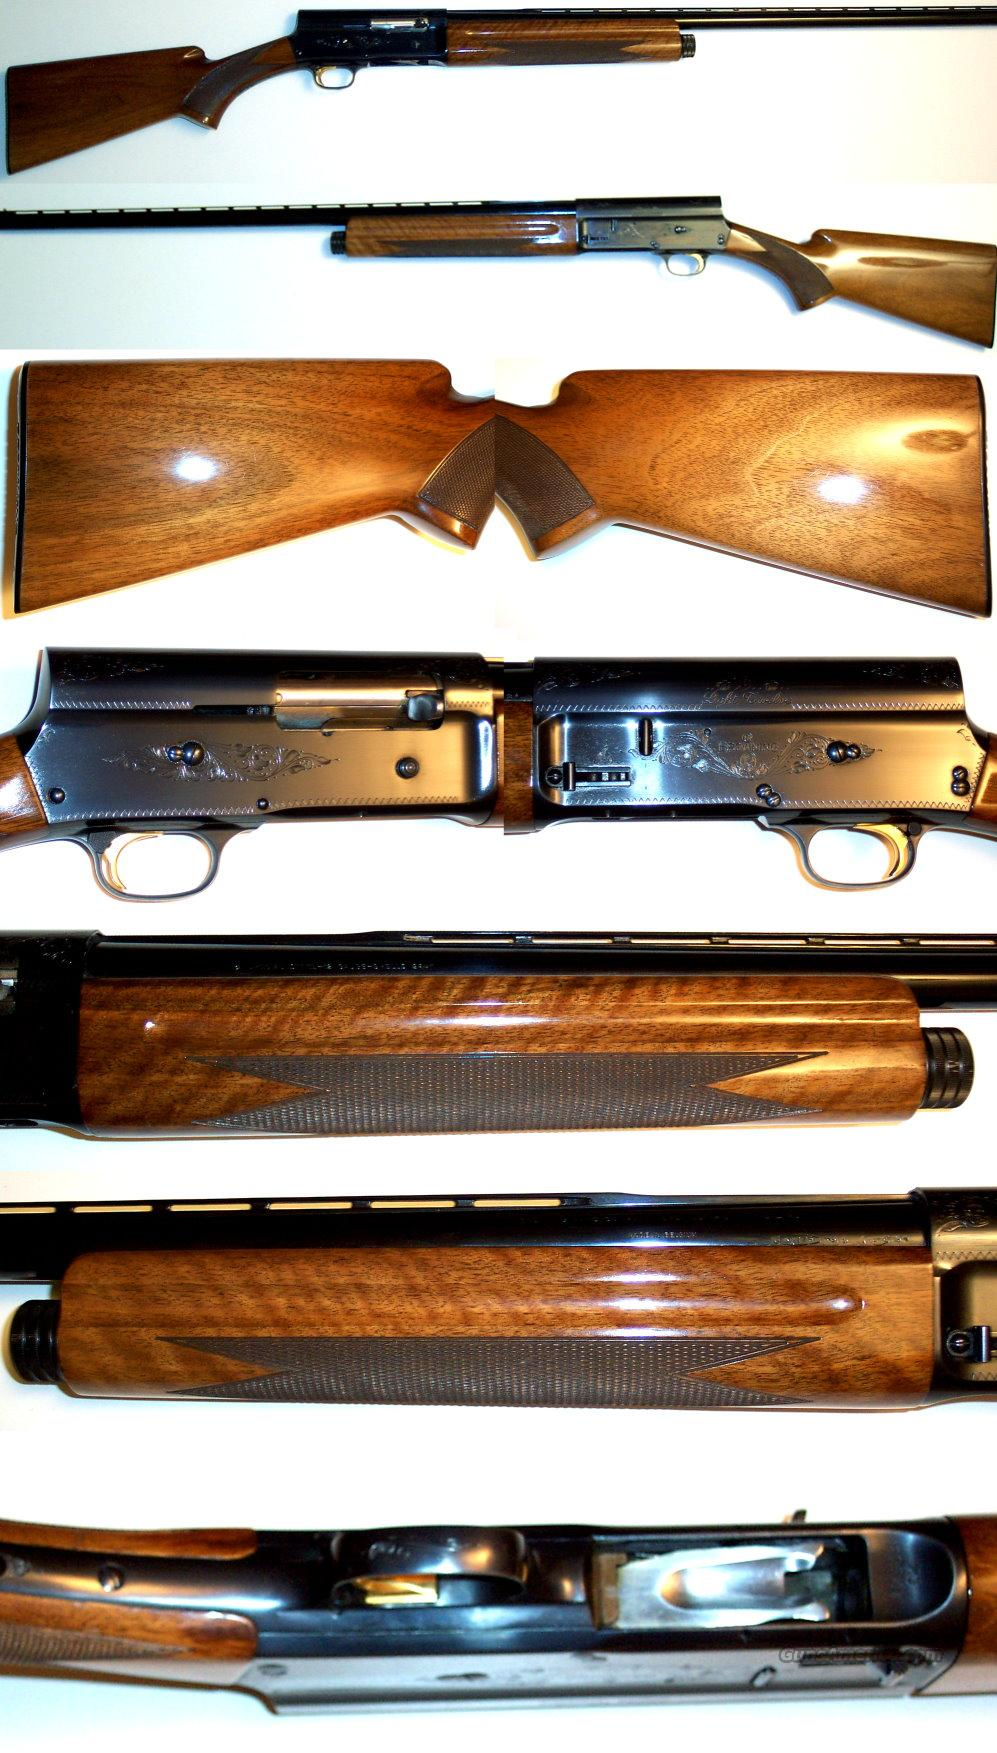 '72 Belgium Browning A5 Light 12 99%  Guns > Shotguns > Browning Shotguns > Autoloaders > Hunting